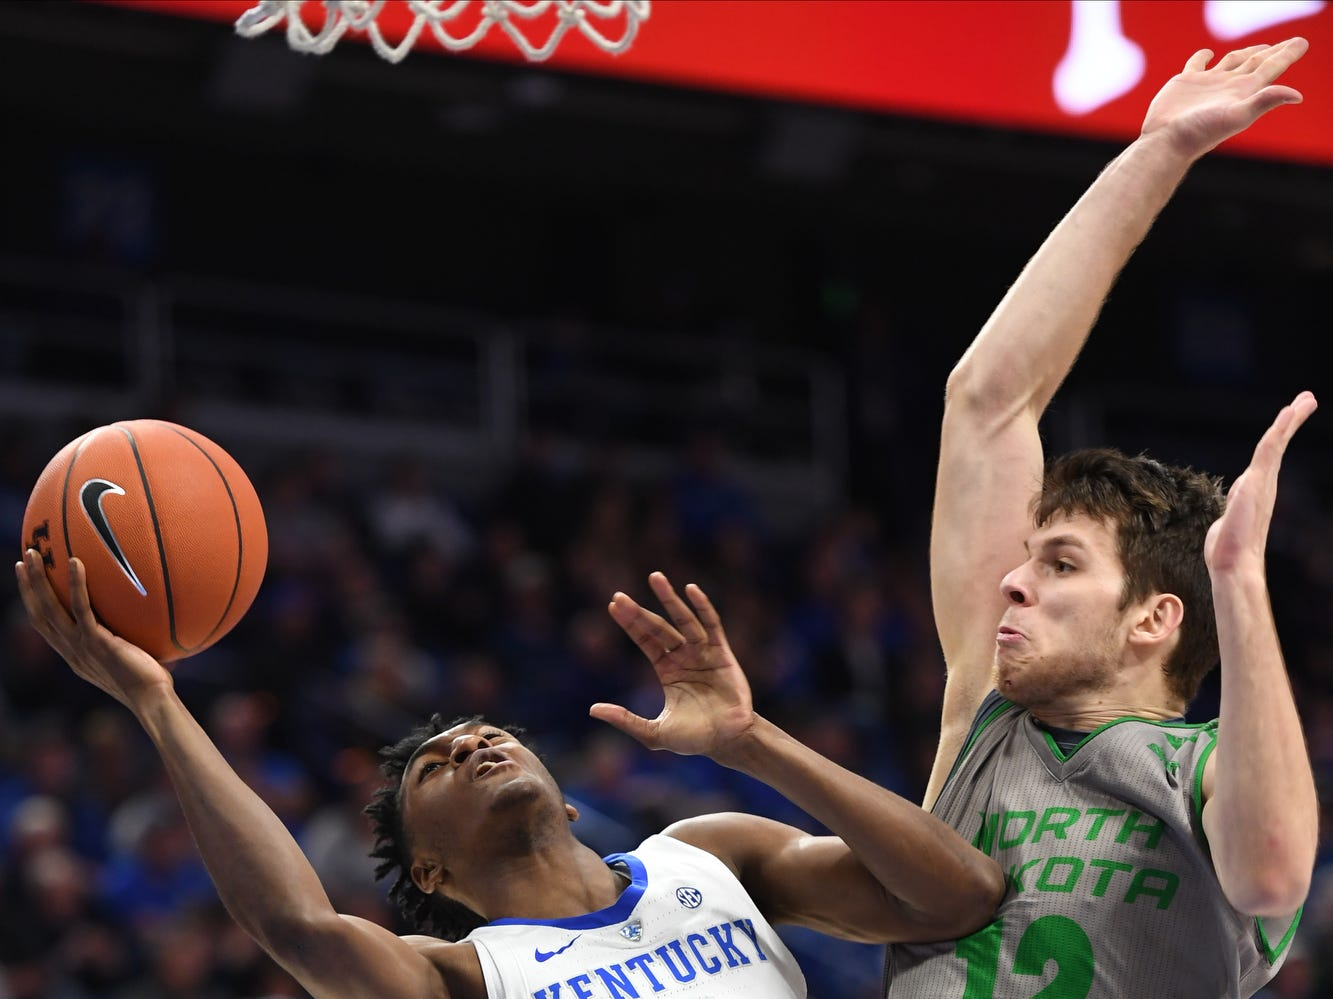 UK G Immanuel Quickley puts up the ball during the University of Kentucky mens basketball game against North Dakota at Rupp Arena in Lexington, Kentucky on Wednesday, November 14, 2018.